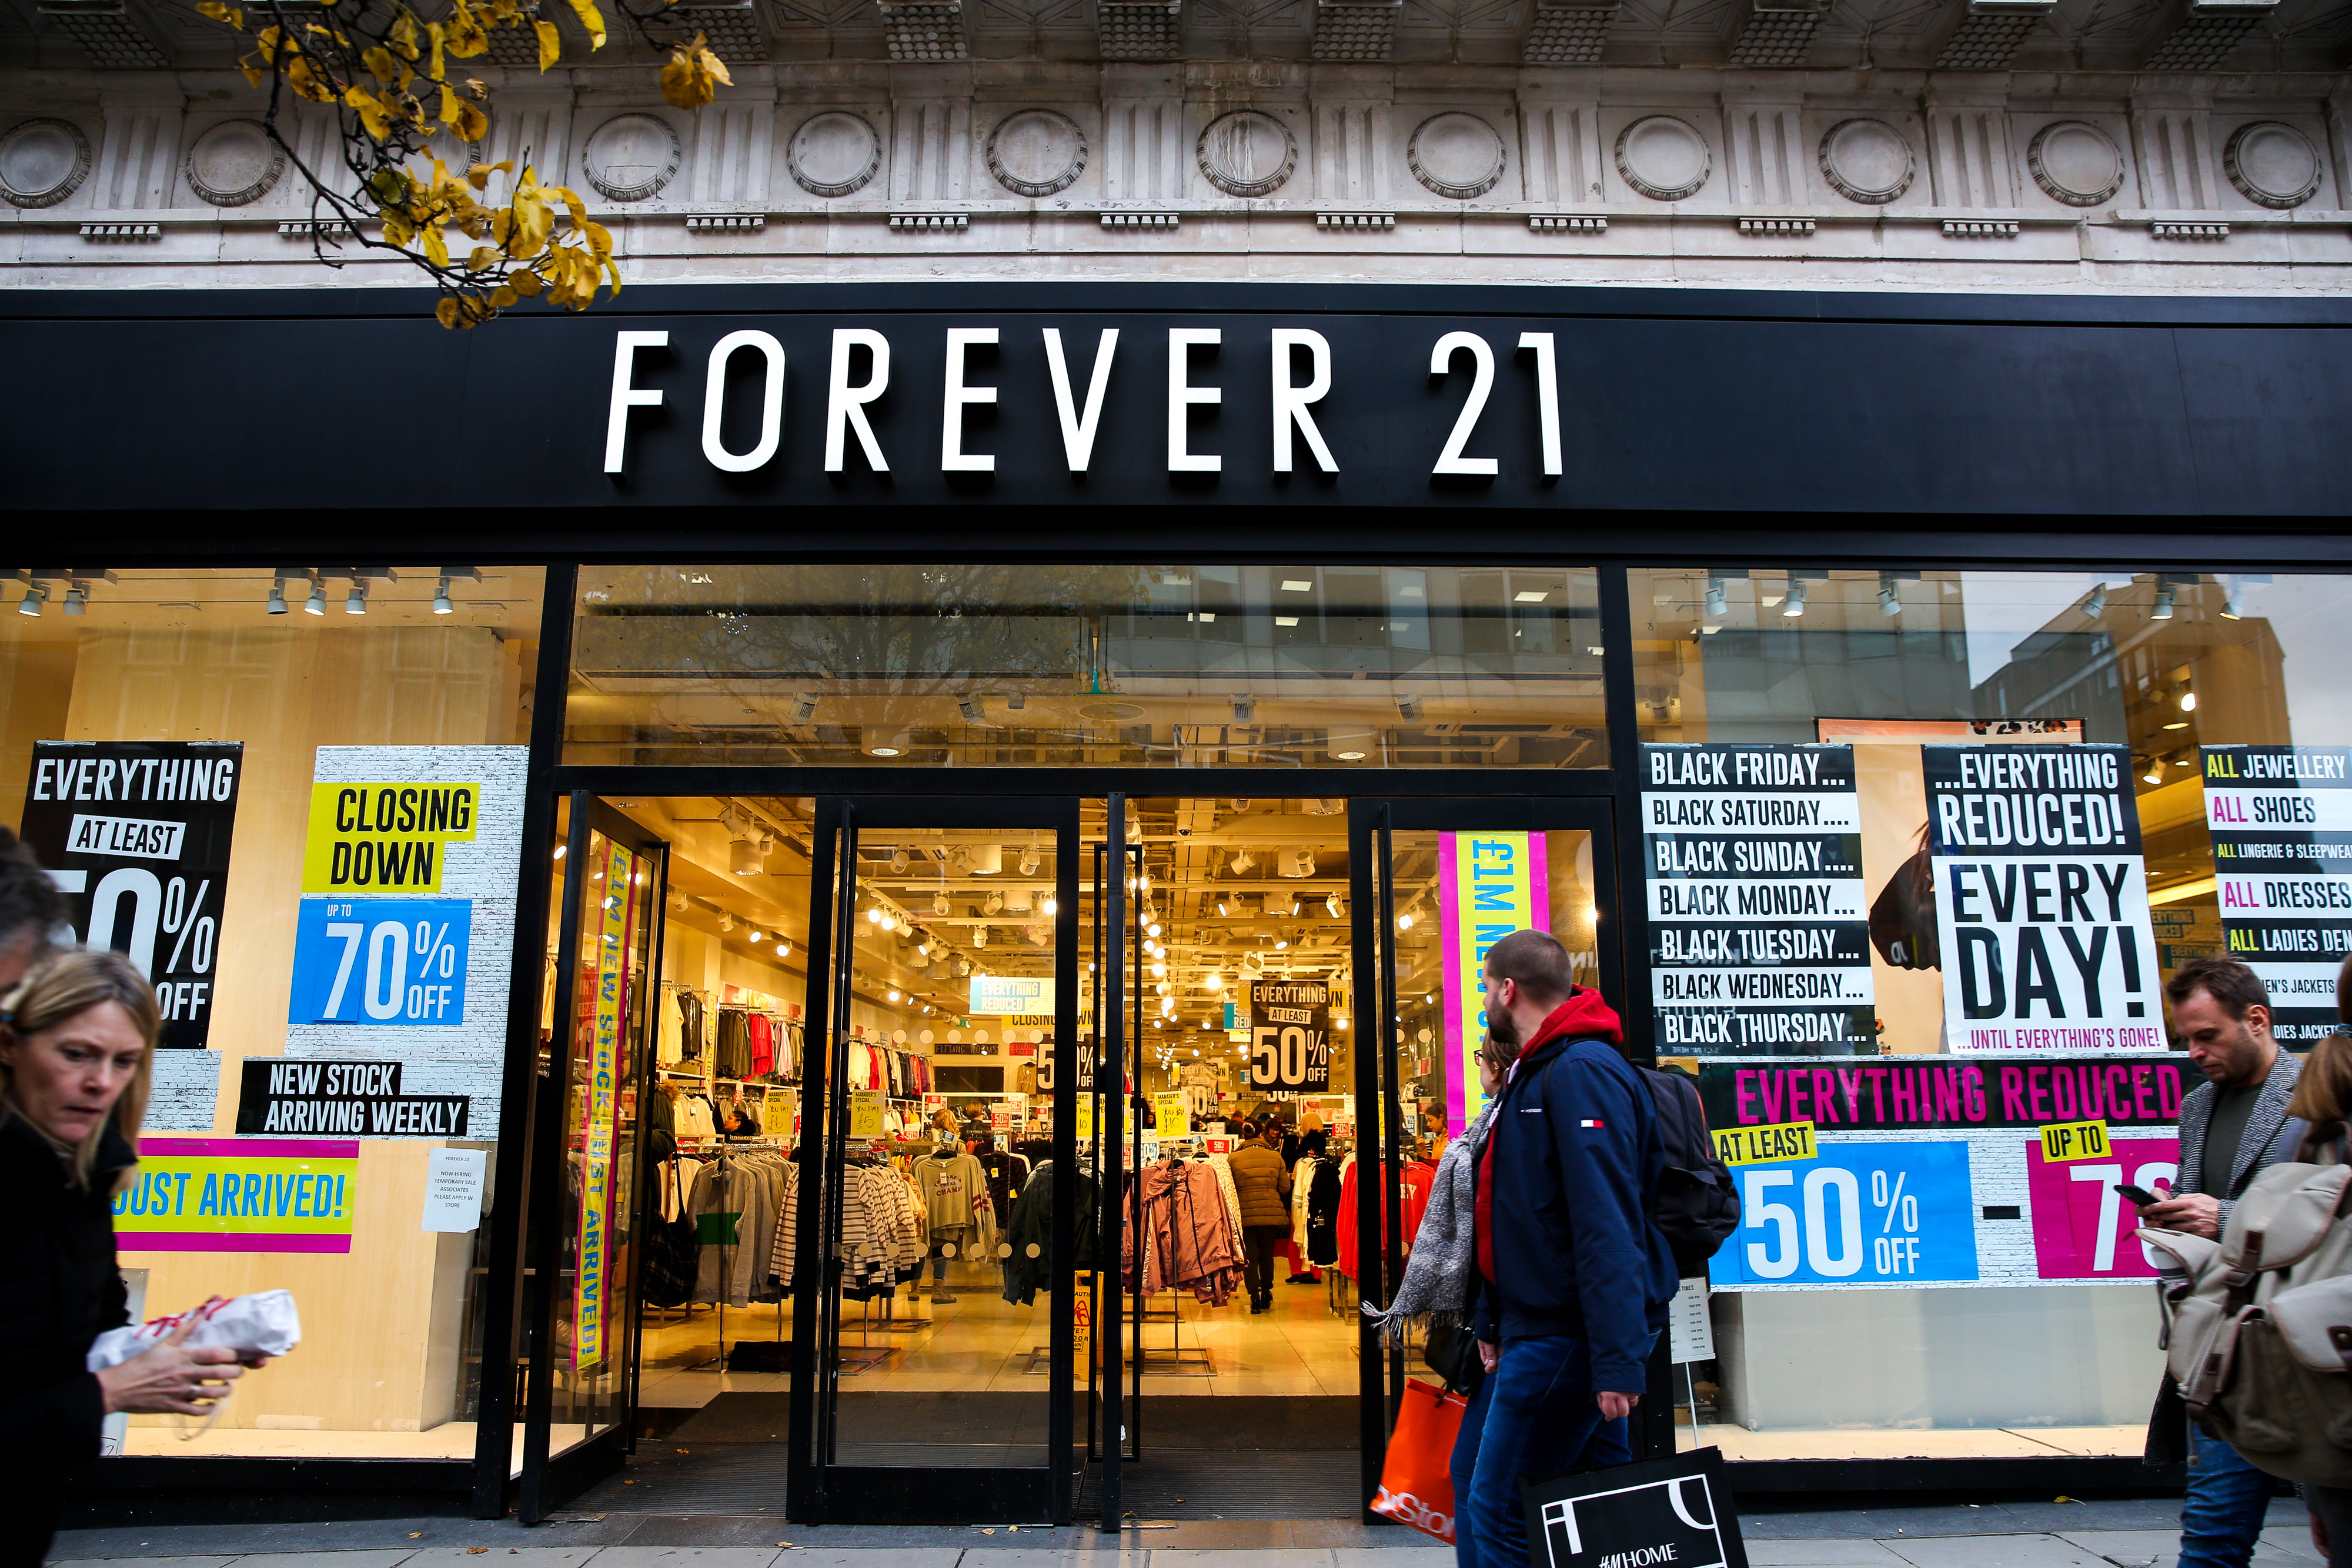 LONDON, UNITED KINGDOM - 2019/11/28: Shoppers walk past the Closing Down signs in the window of Forever 21 store on Oxford Street in London. (Photo by Steve Taylor/SOPA Images/LightRocket via Getty Images)